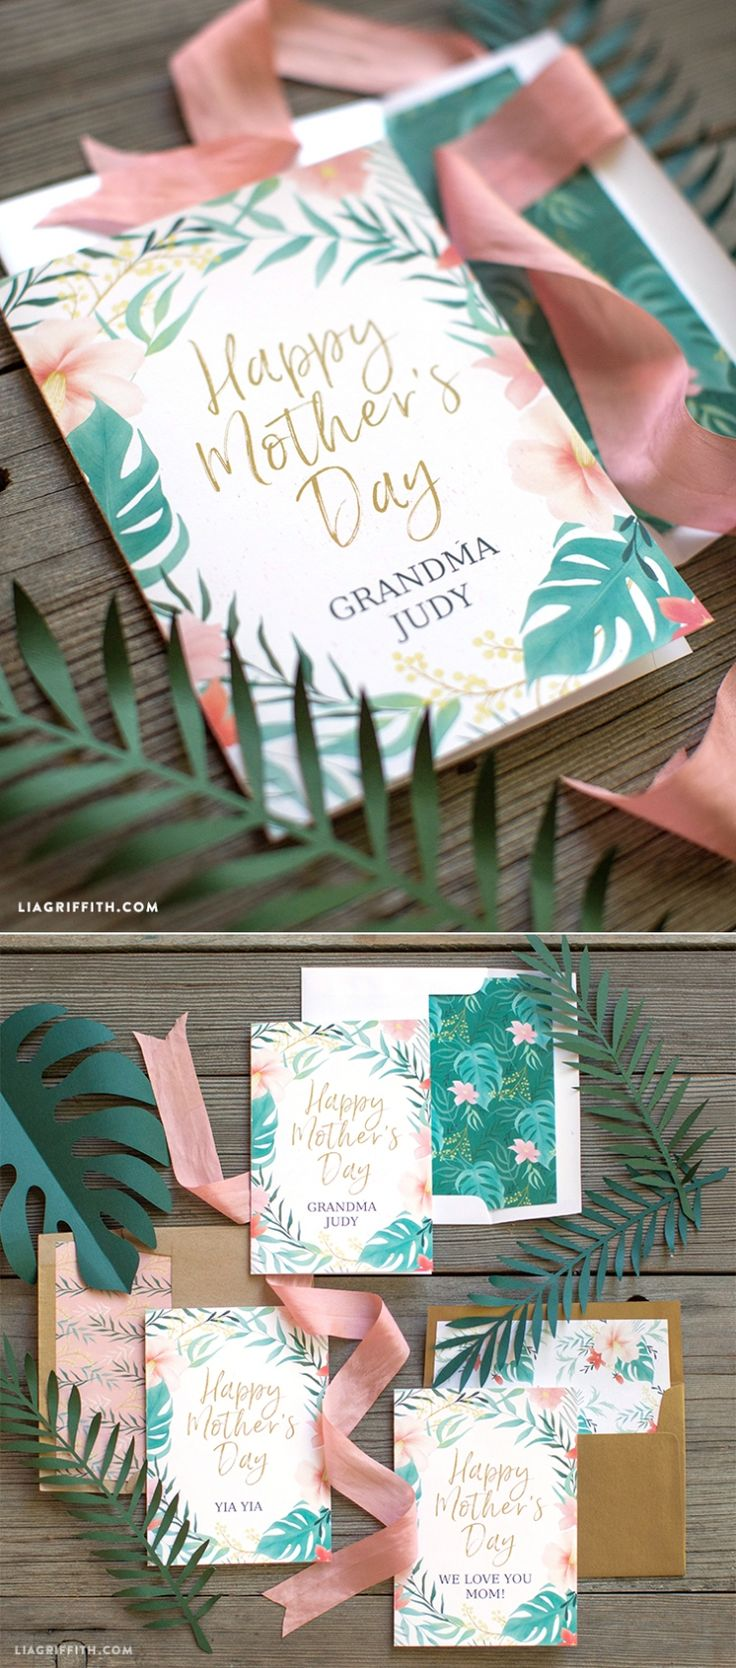 #MothersDayCard You can make this! www.LiaGriffith.com